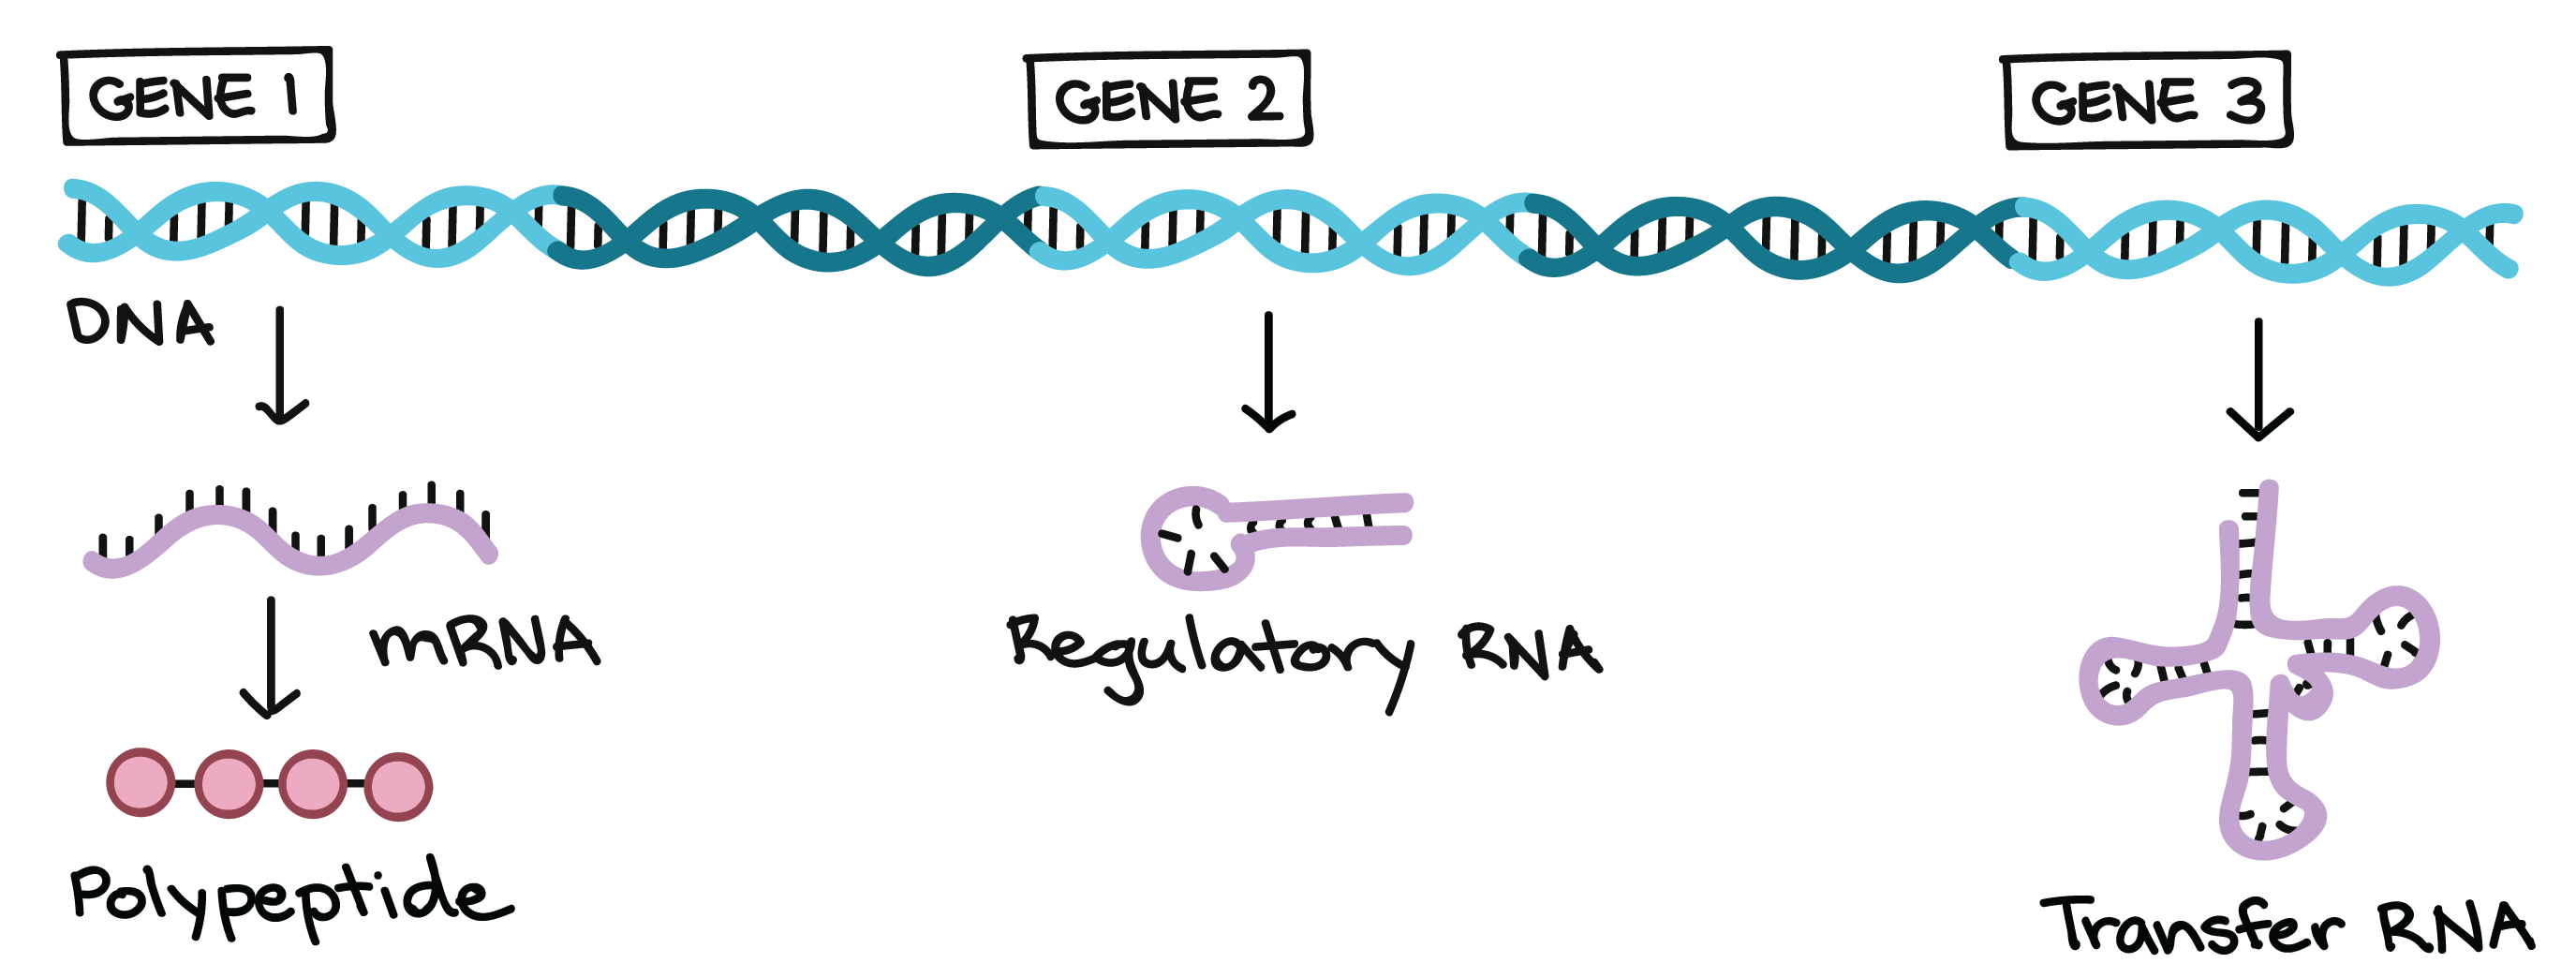 Biology drawing background. Dna replication and rna